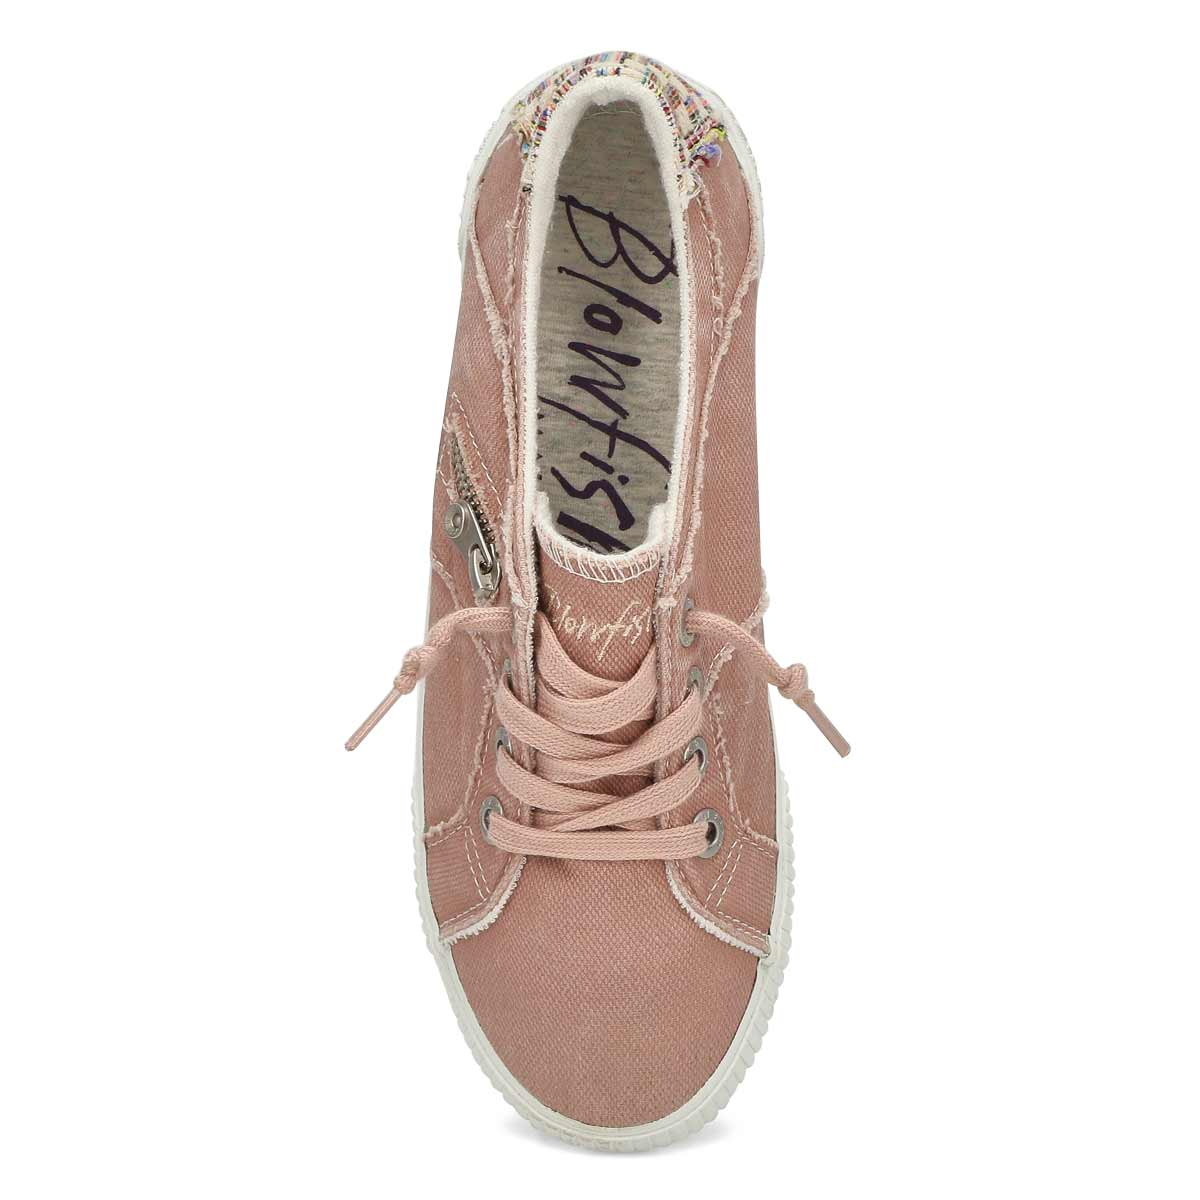 Lds Fruit pink lace up fashion sneaker